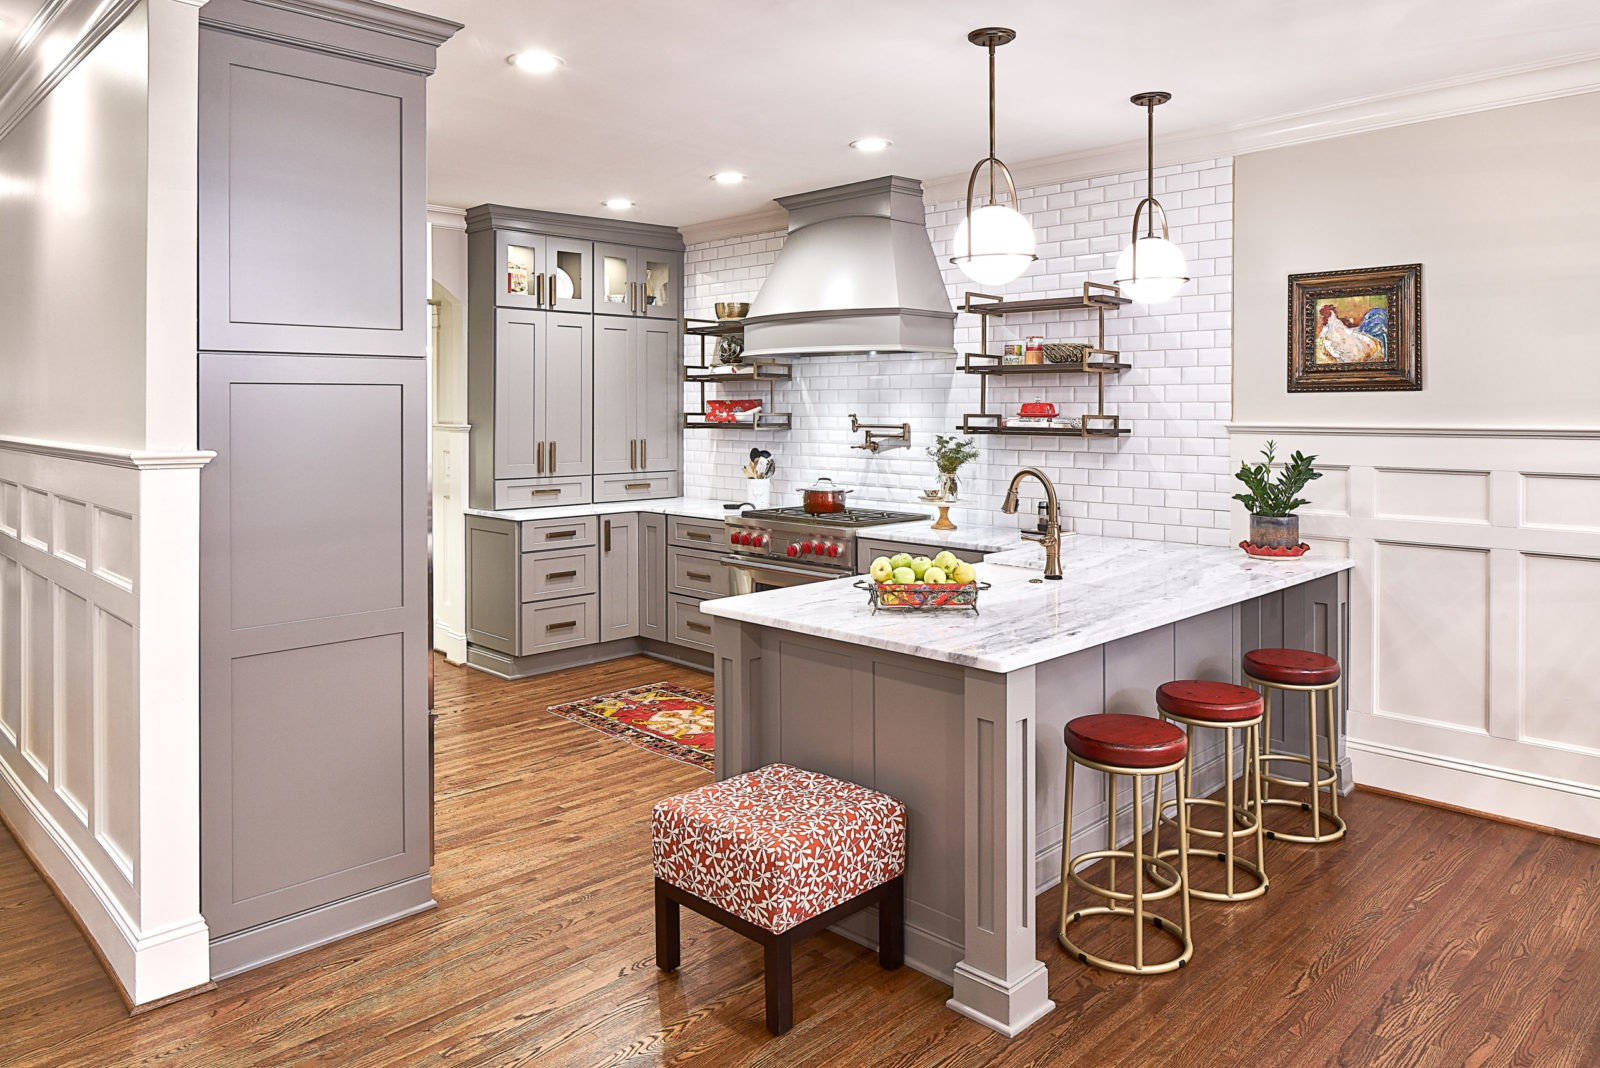 home-renovation-dilworth-kitche